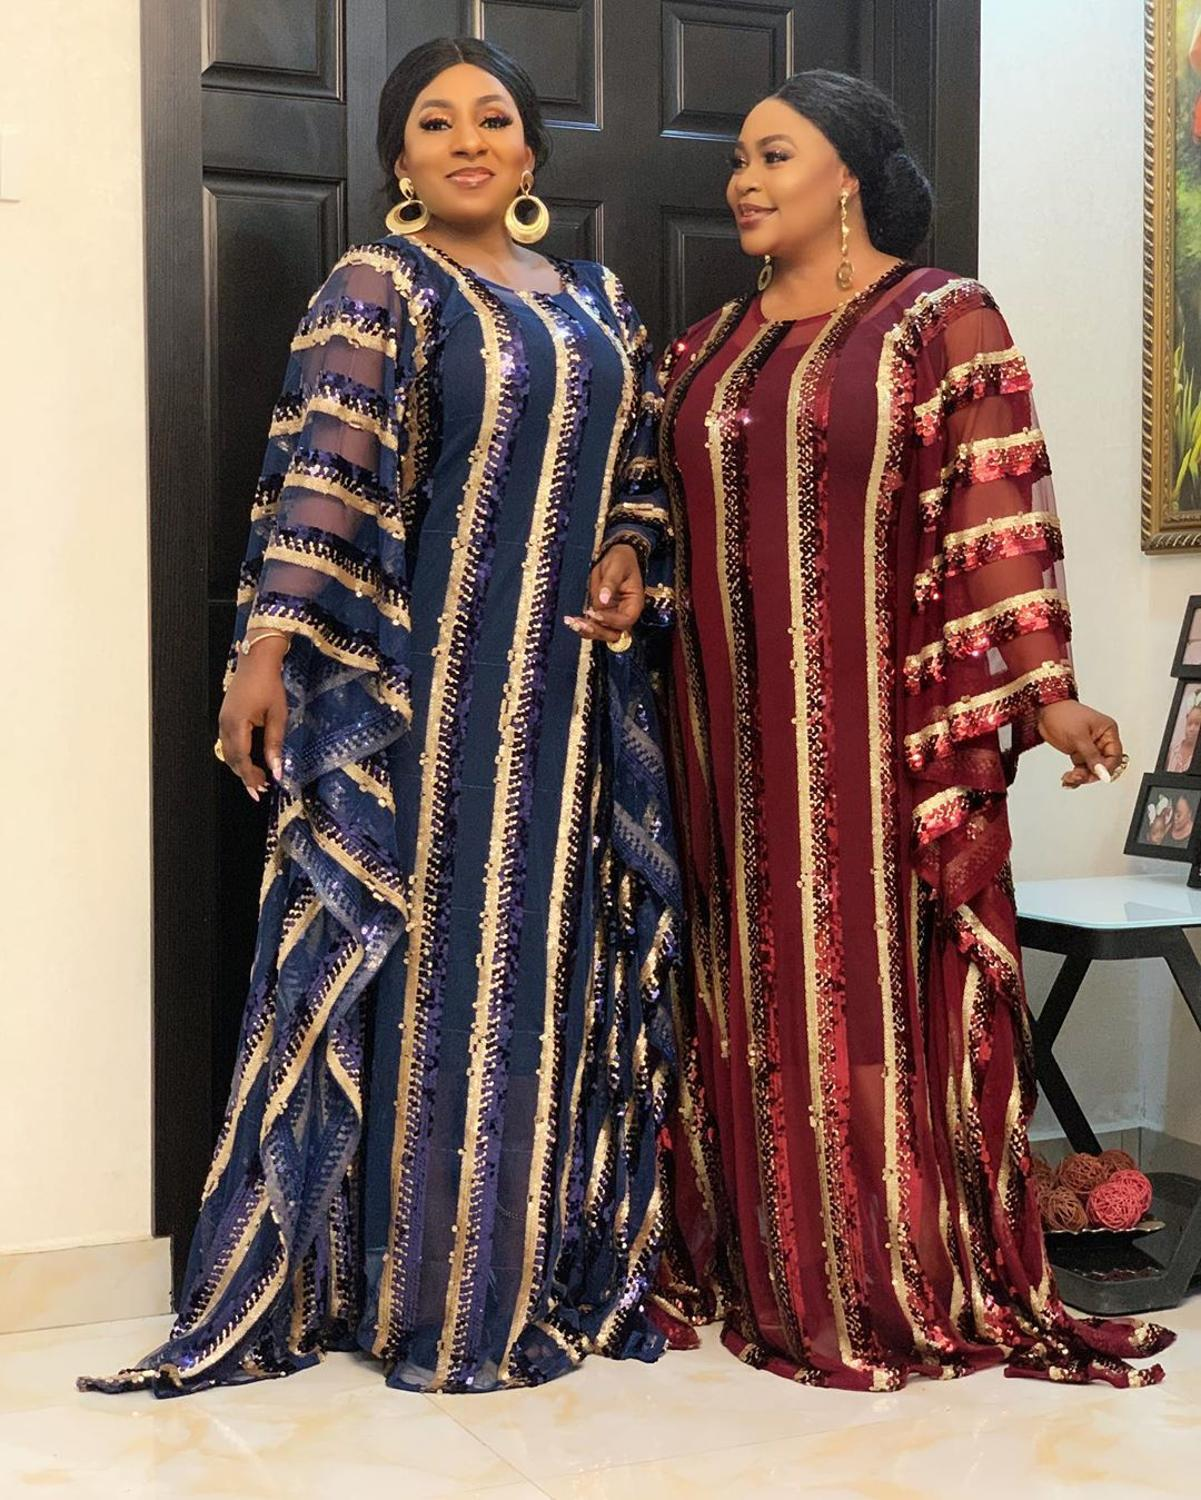 New Style African Women's Dashiki Fashion Sequins Netting Material Free Size Length 154 Cm Loose Long Dress And Inwardly 2 Piece